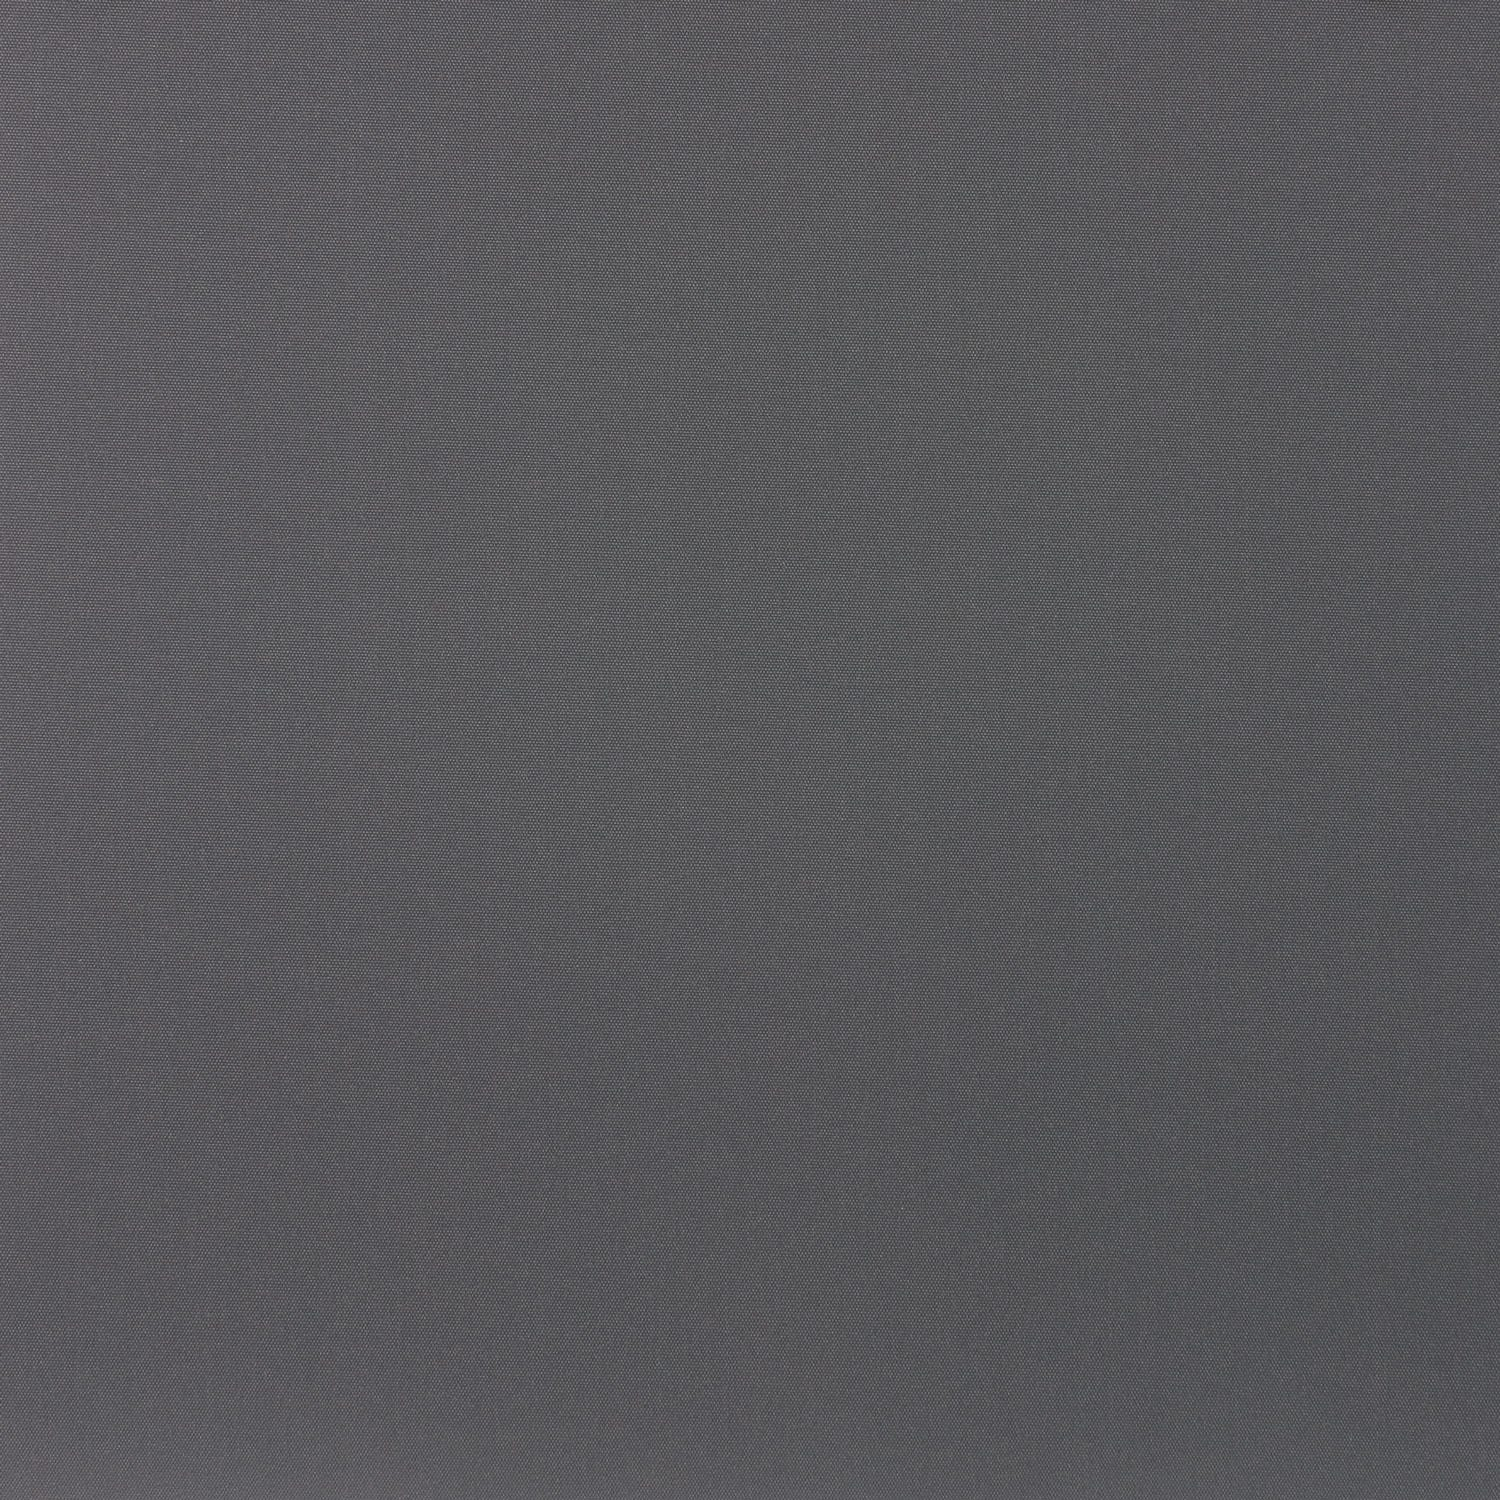 Mendocino Charcoal Broadcloth Textured Blackout Roller Shade Swatch